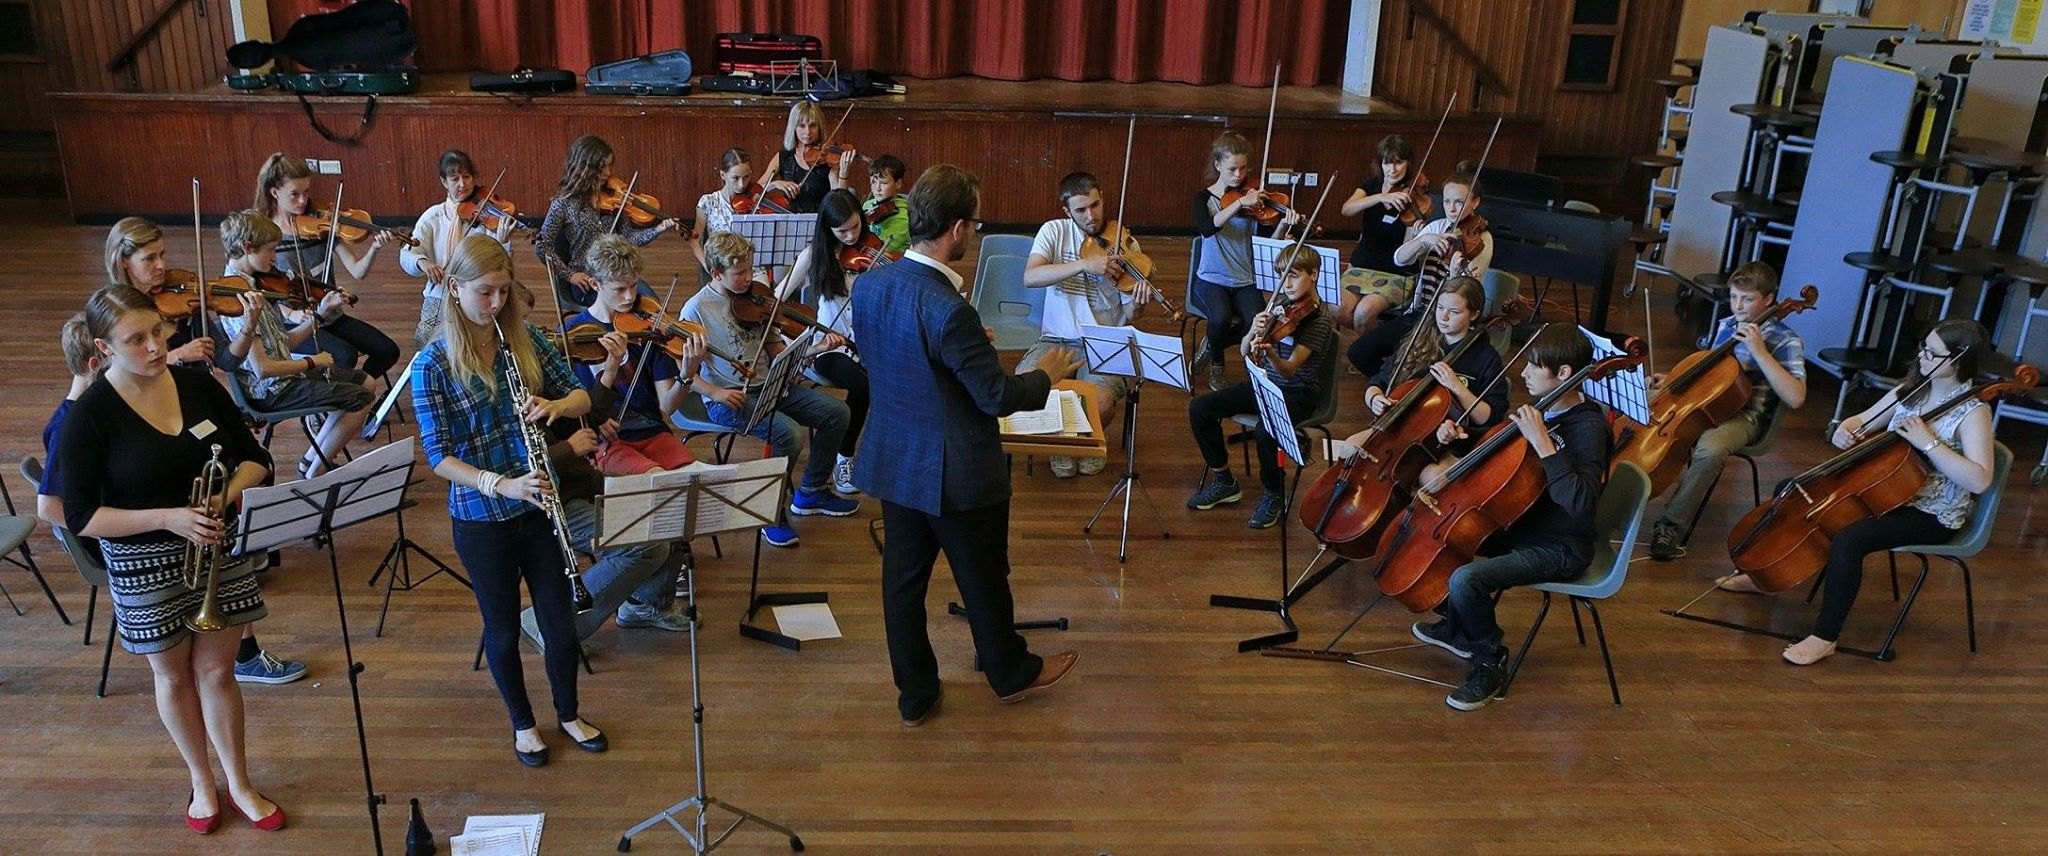 2435Broadstone Music Series launch inaugural summer school to great success